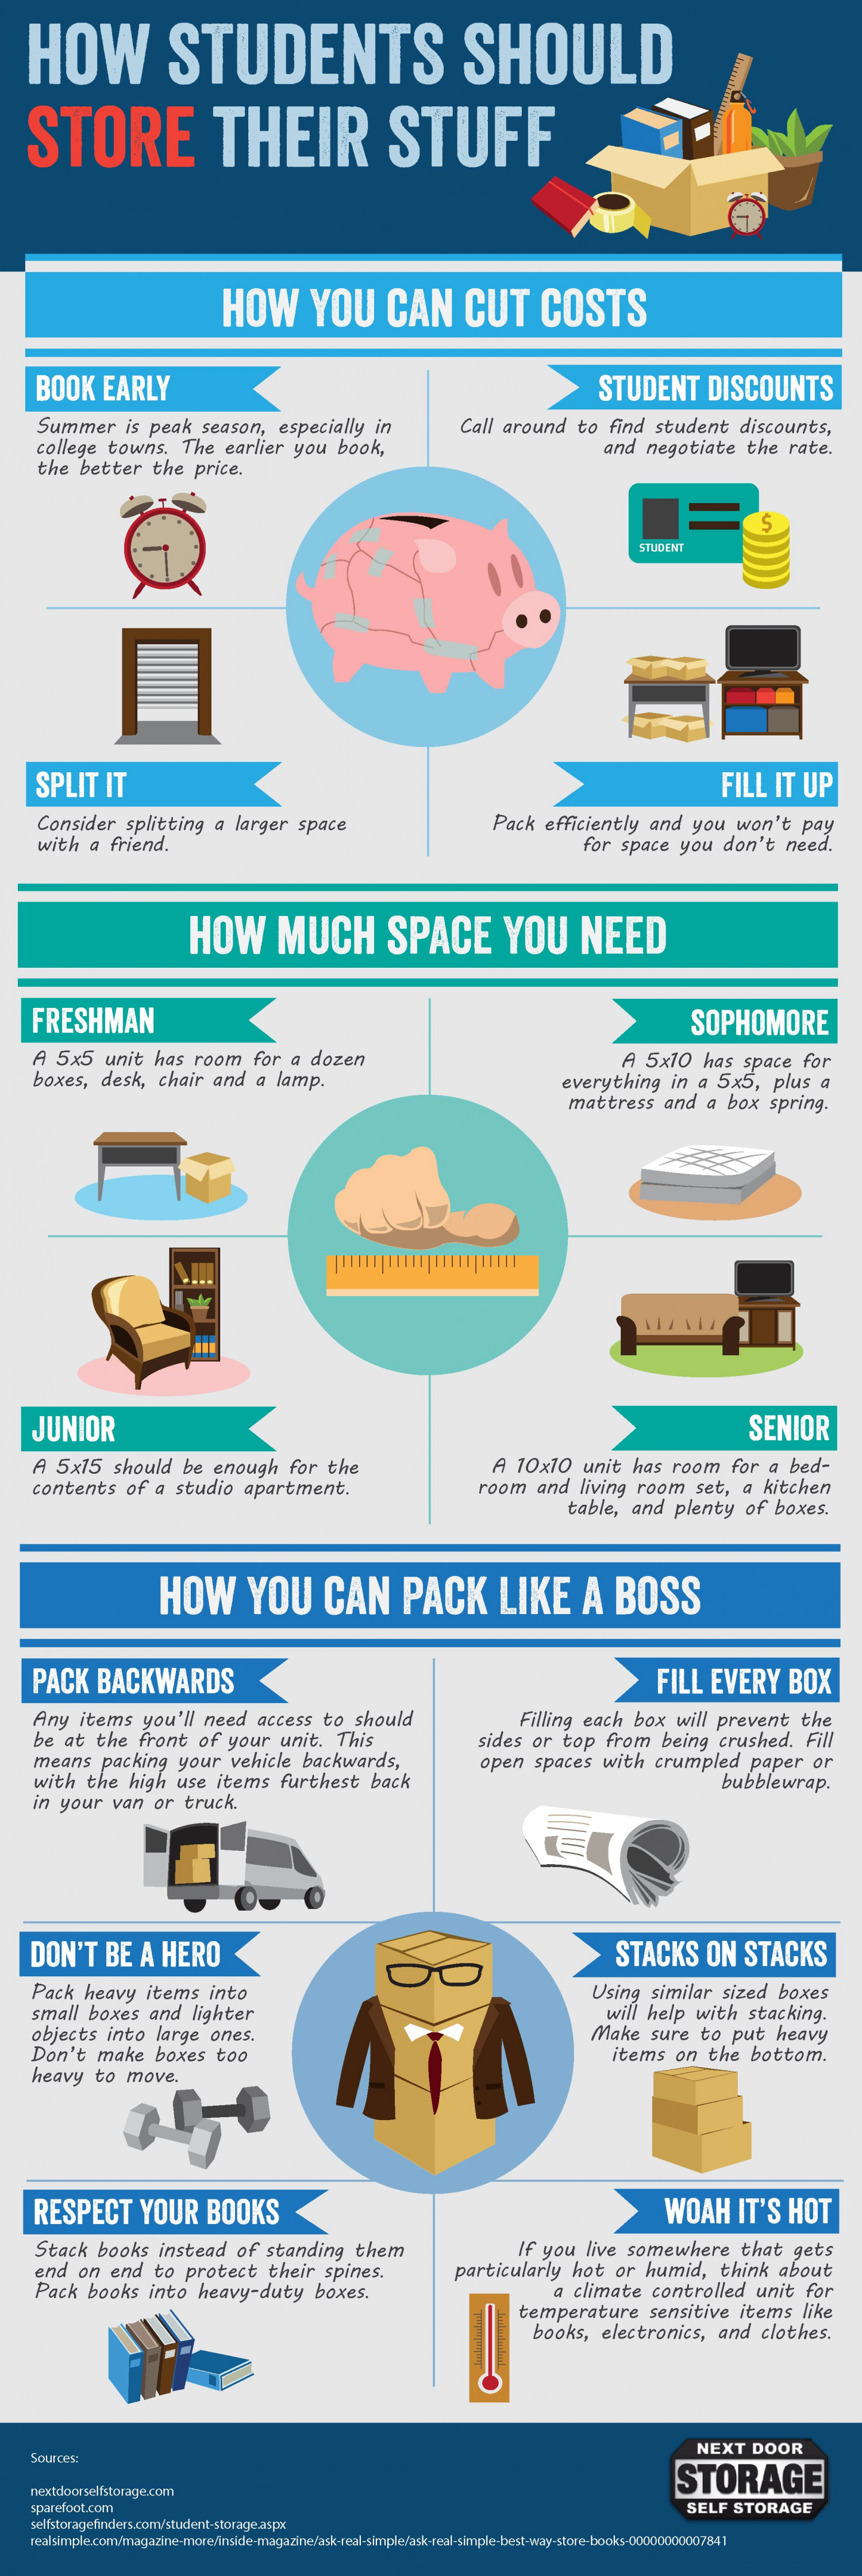 How Students Should Store Their Stuff Infographic